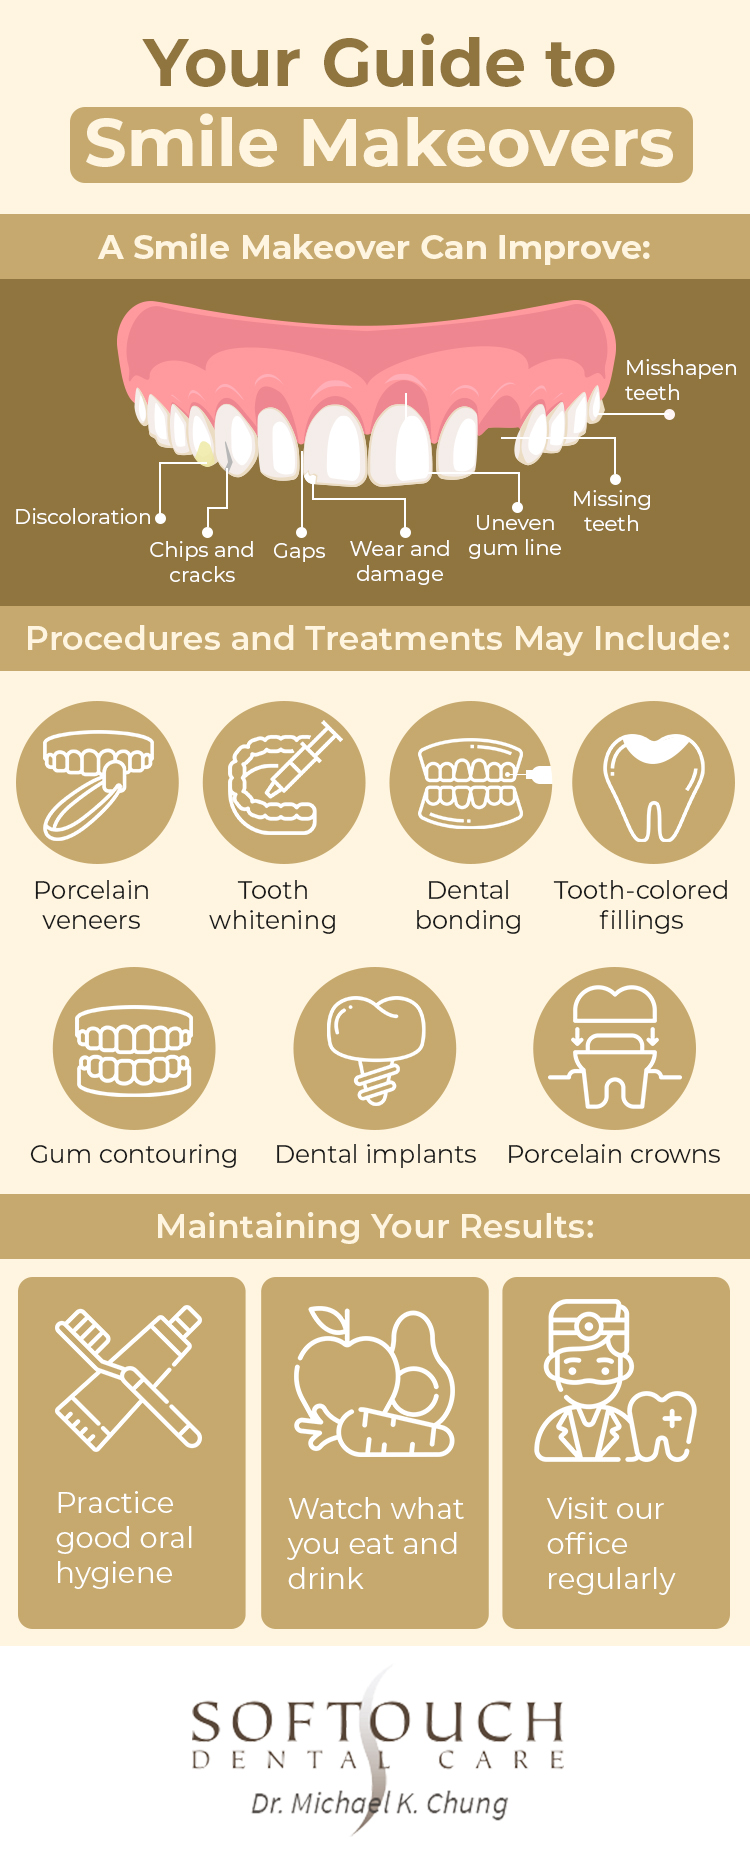 Smile makeover guide infographic